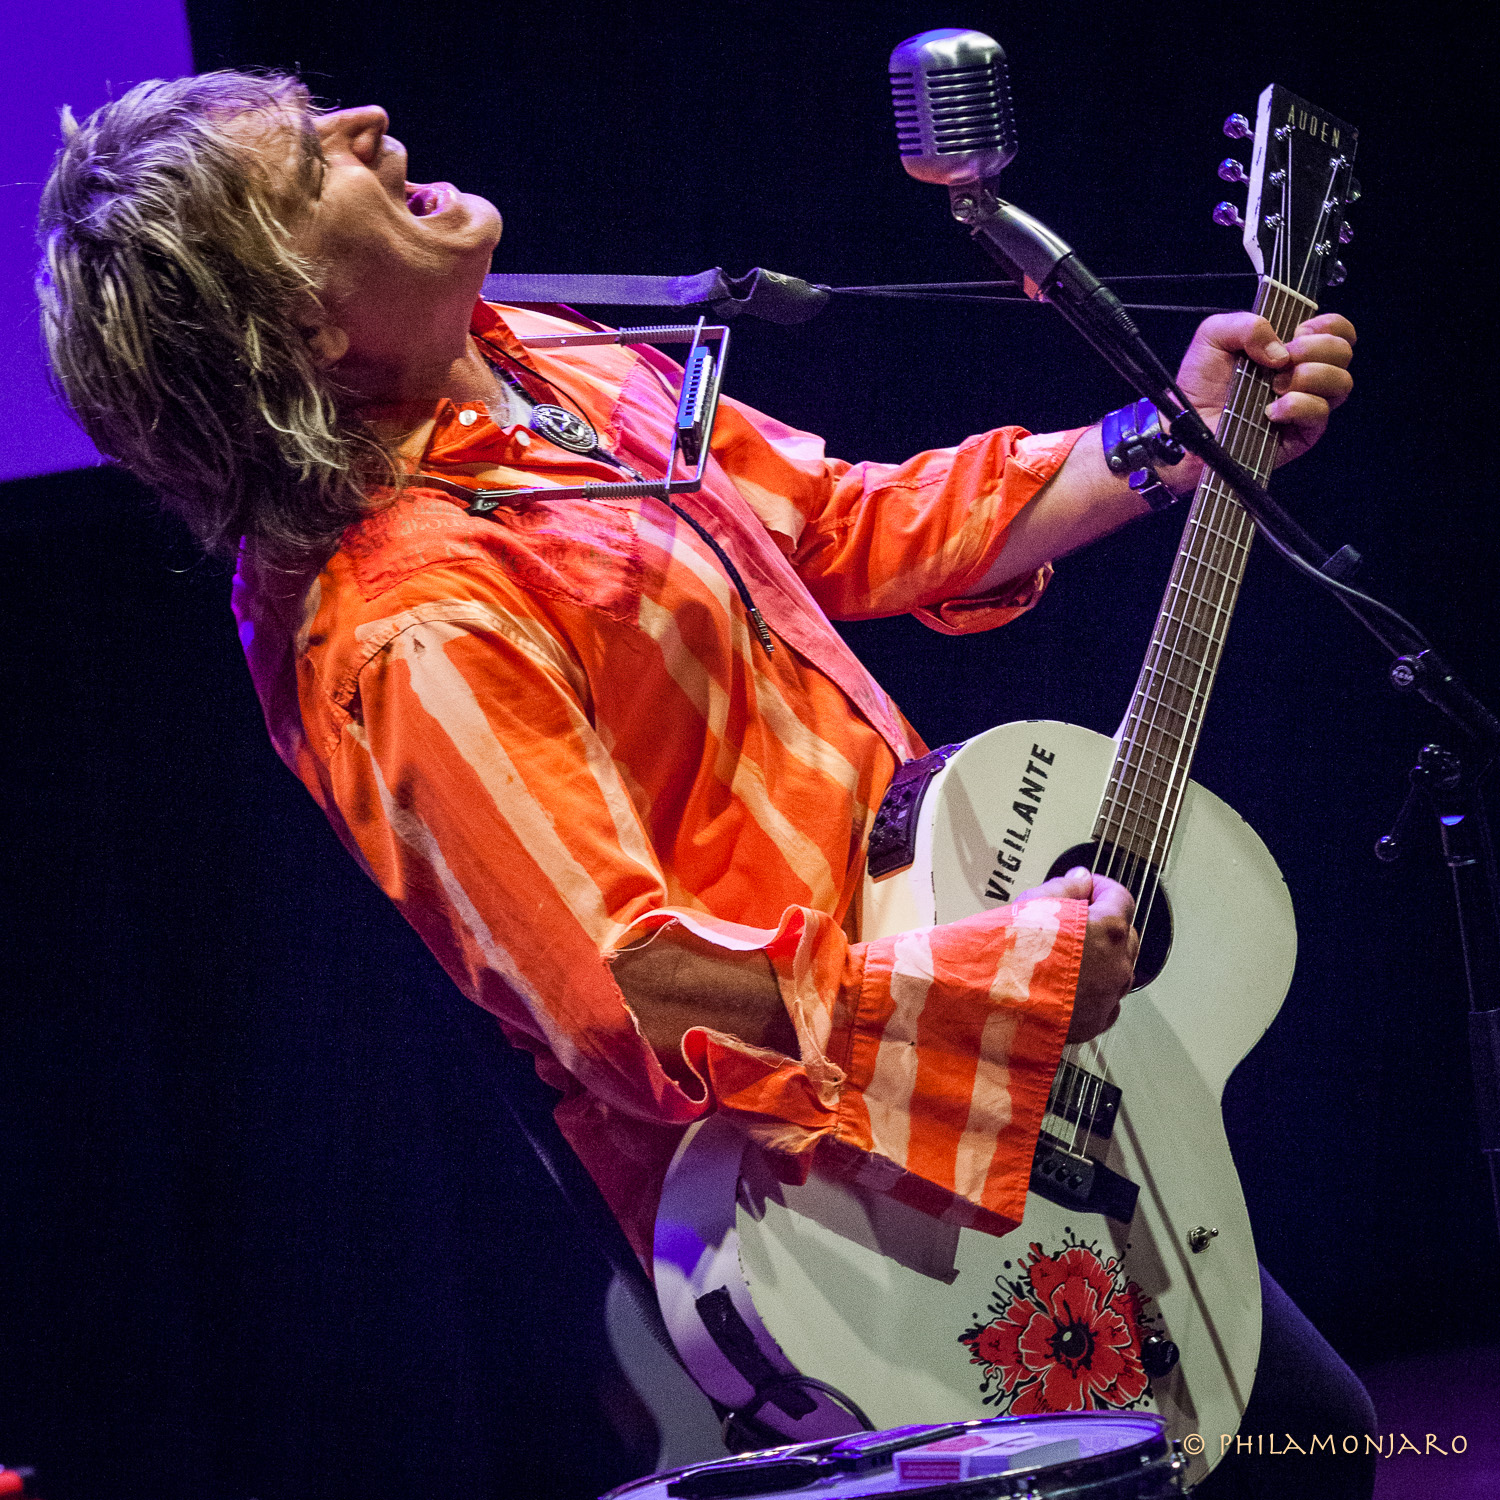 PHOTOS / RECAP | Mike Peters @ Old Town School of Folk Music 9/23/16